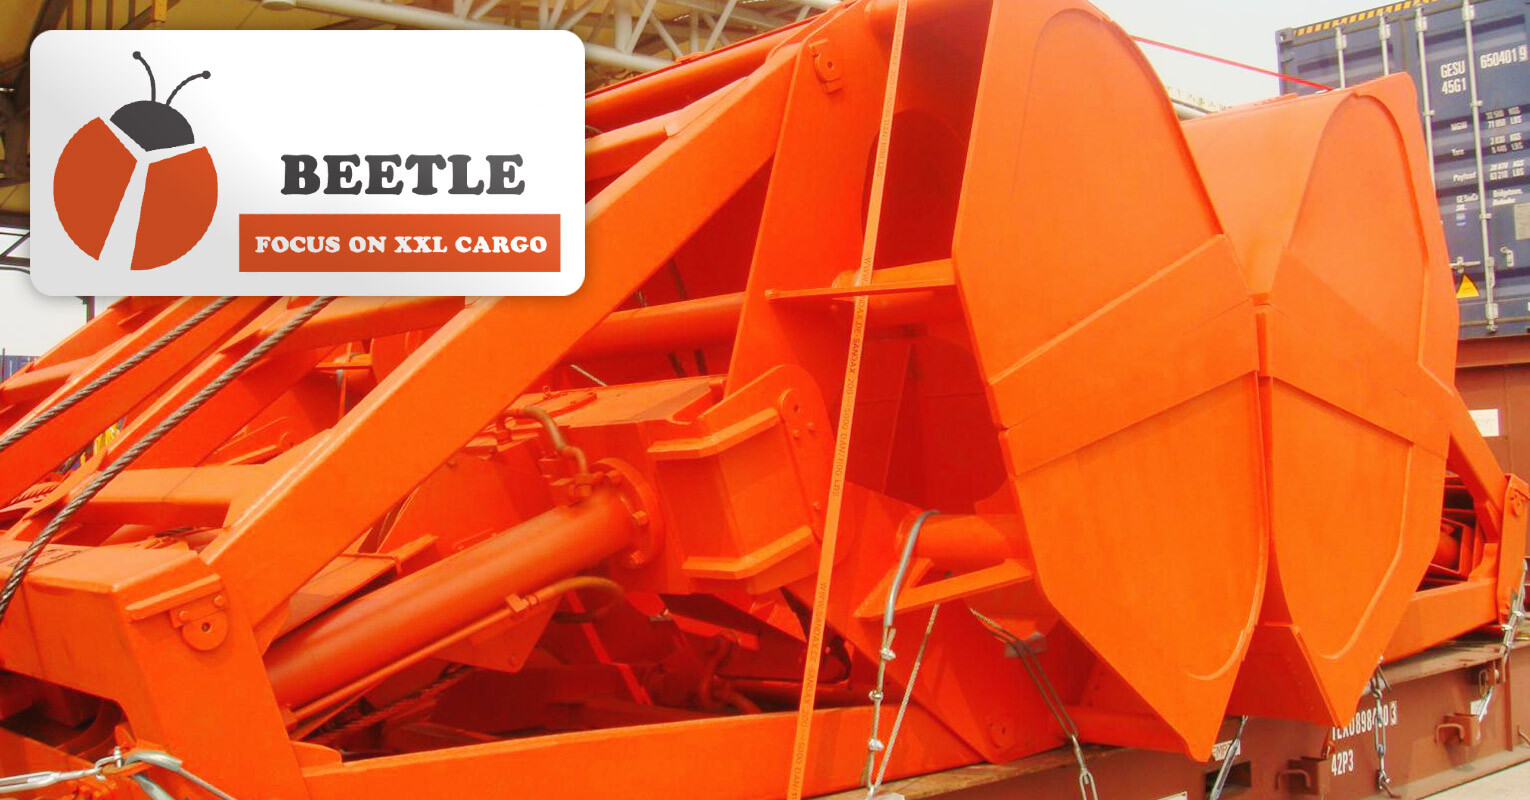 Shanghai Beetle Shipped a Grab Bucket from Shanghai to Puerto Cabello